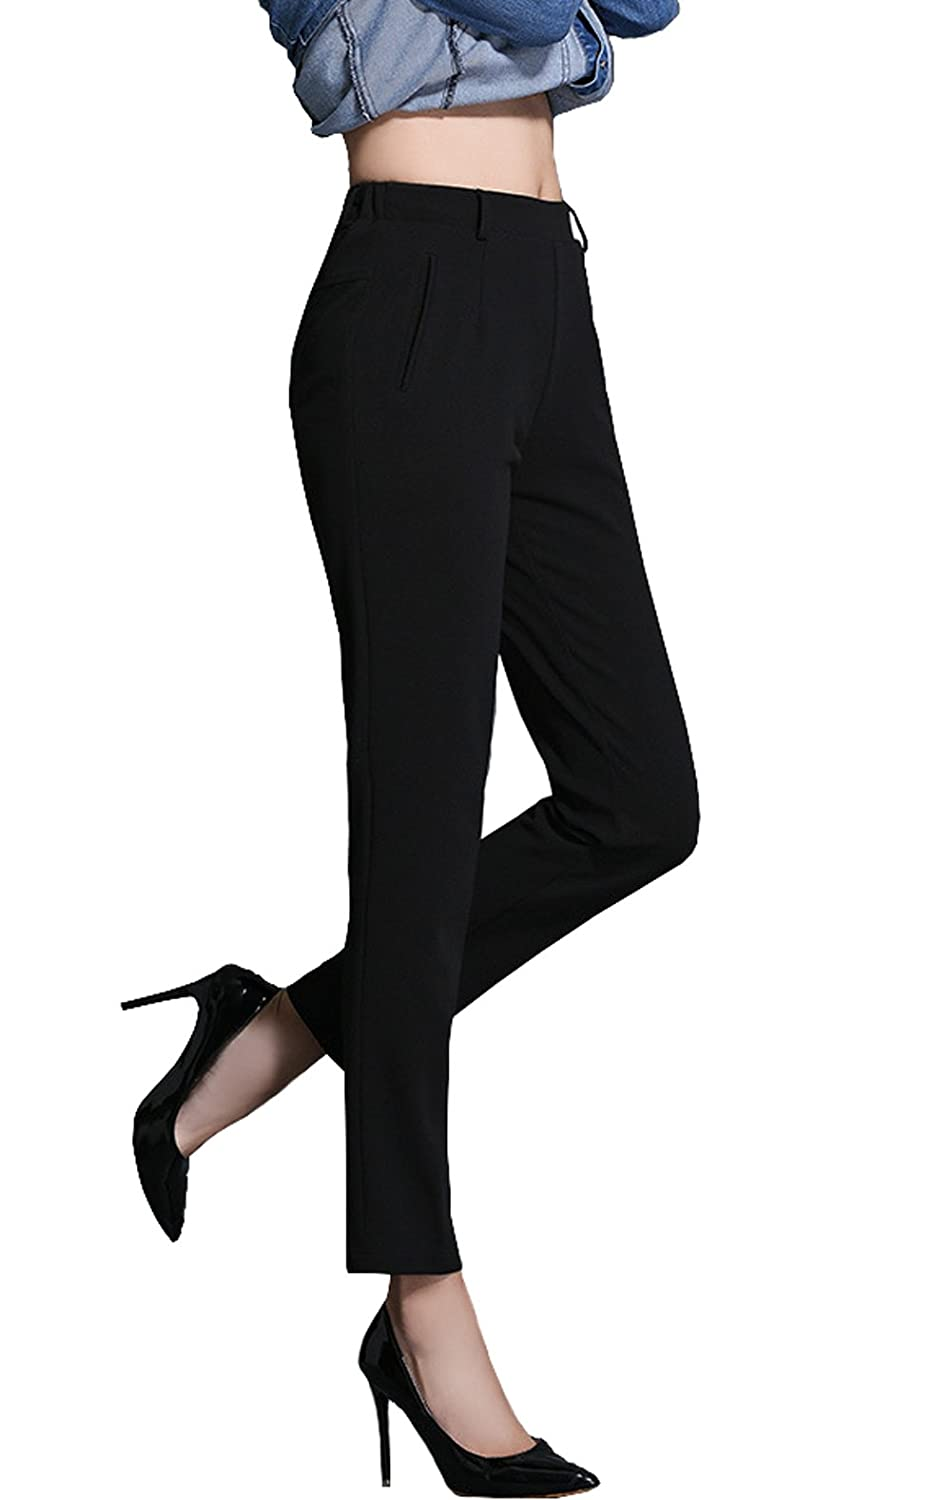 Tanming Women's Casual Middle Waist Stretch Pencil Pants Plus Size